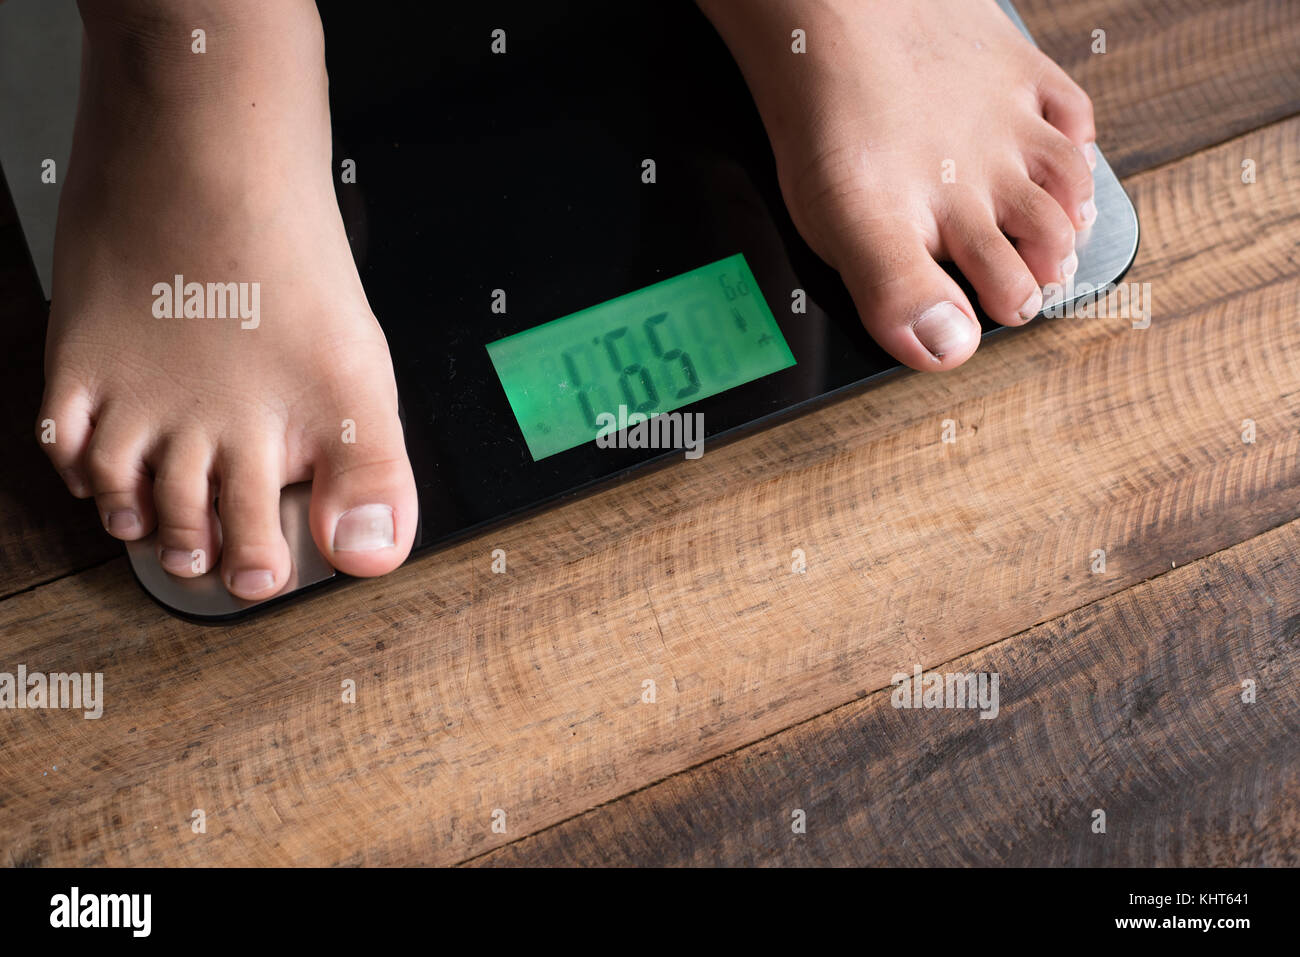 asian boy feet on a weighing scale - boy standing on weighing scale - Stock Image